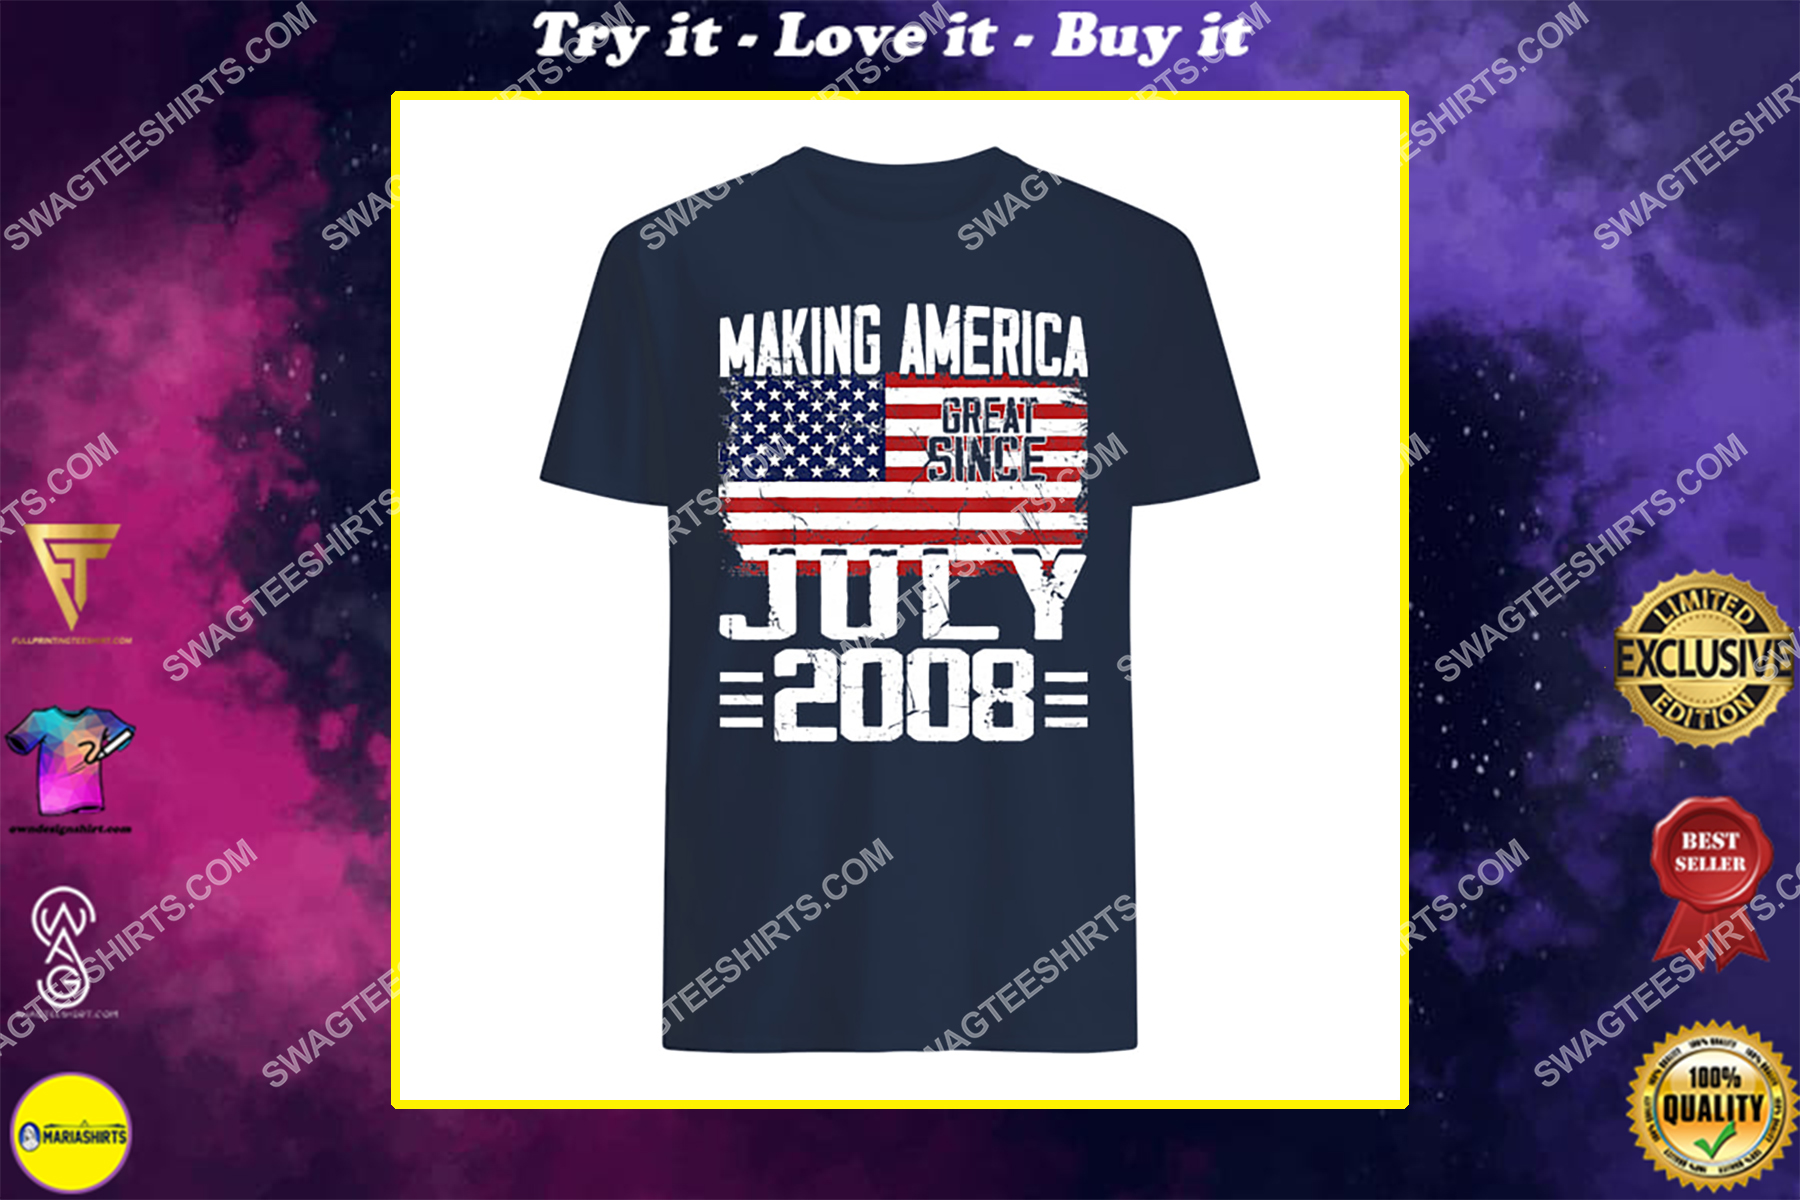 13th birthday gift july 2008 american flag 13 years old happyindependence day shirt